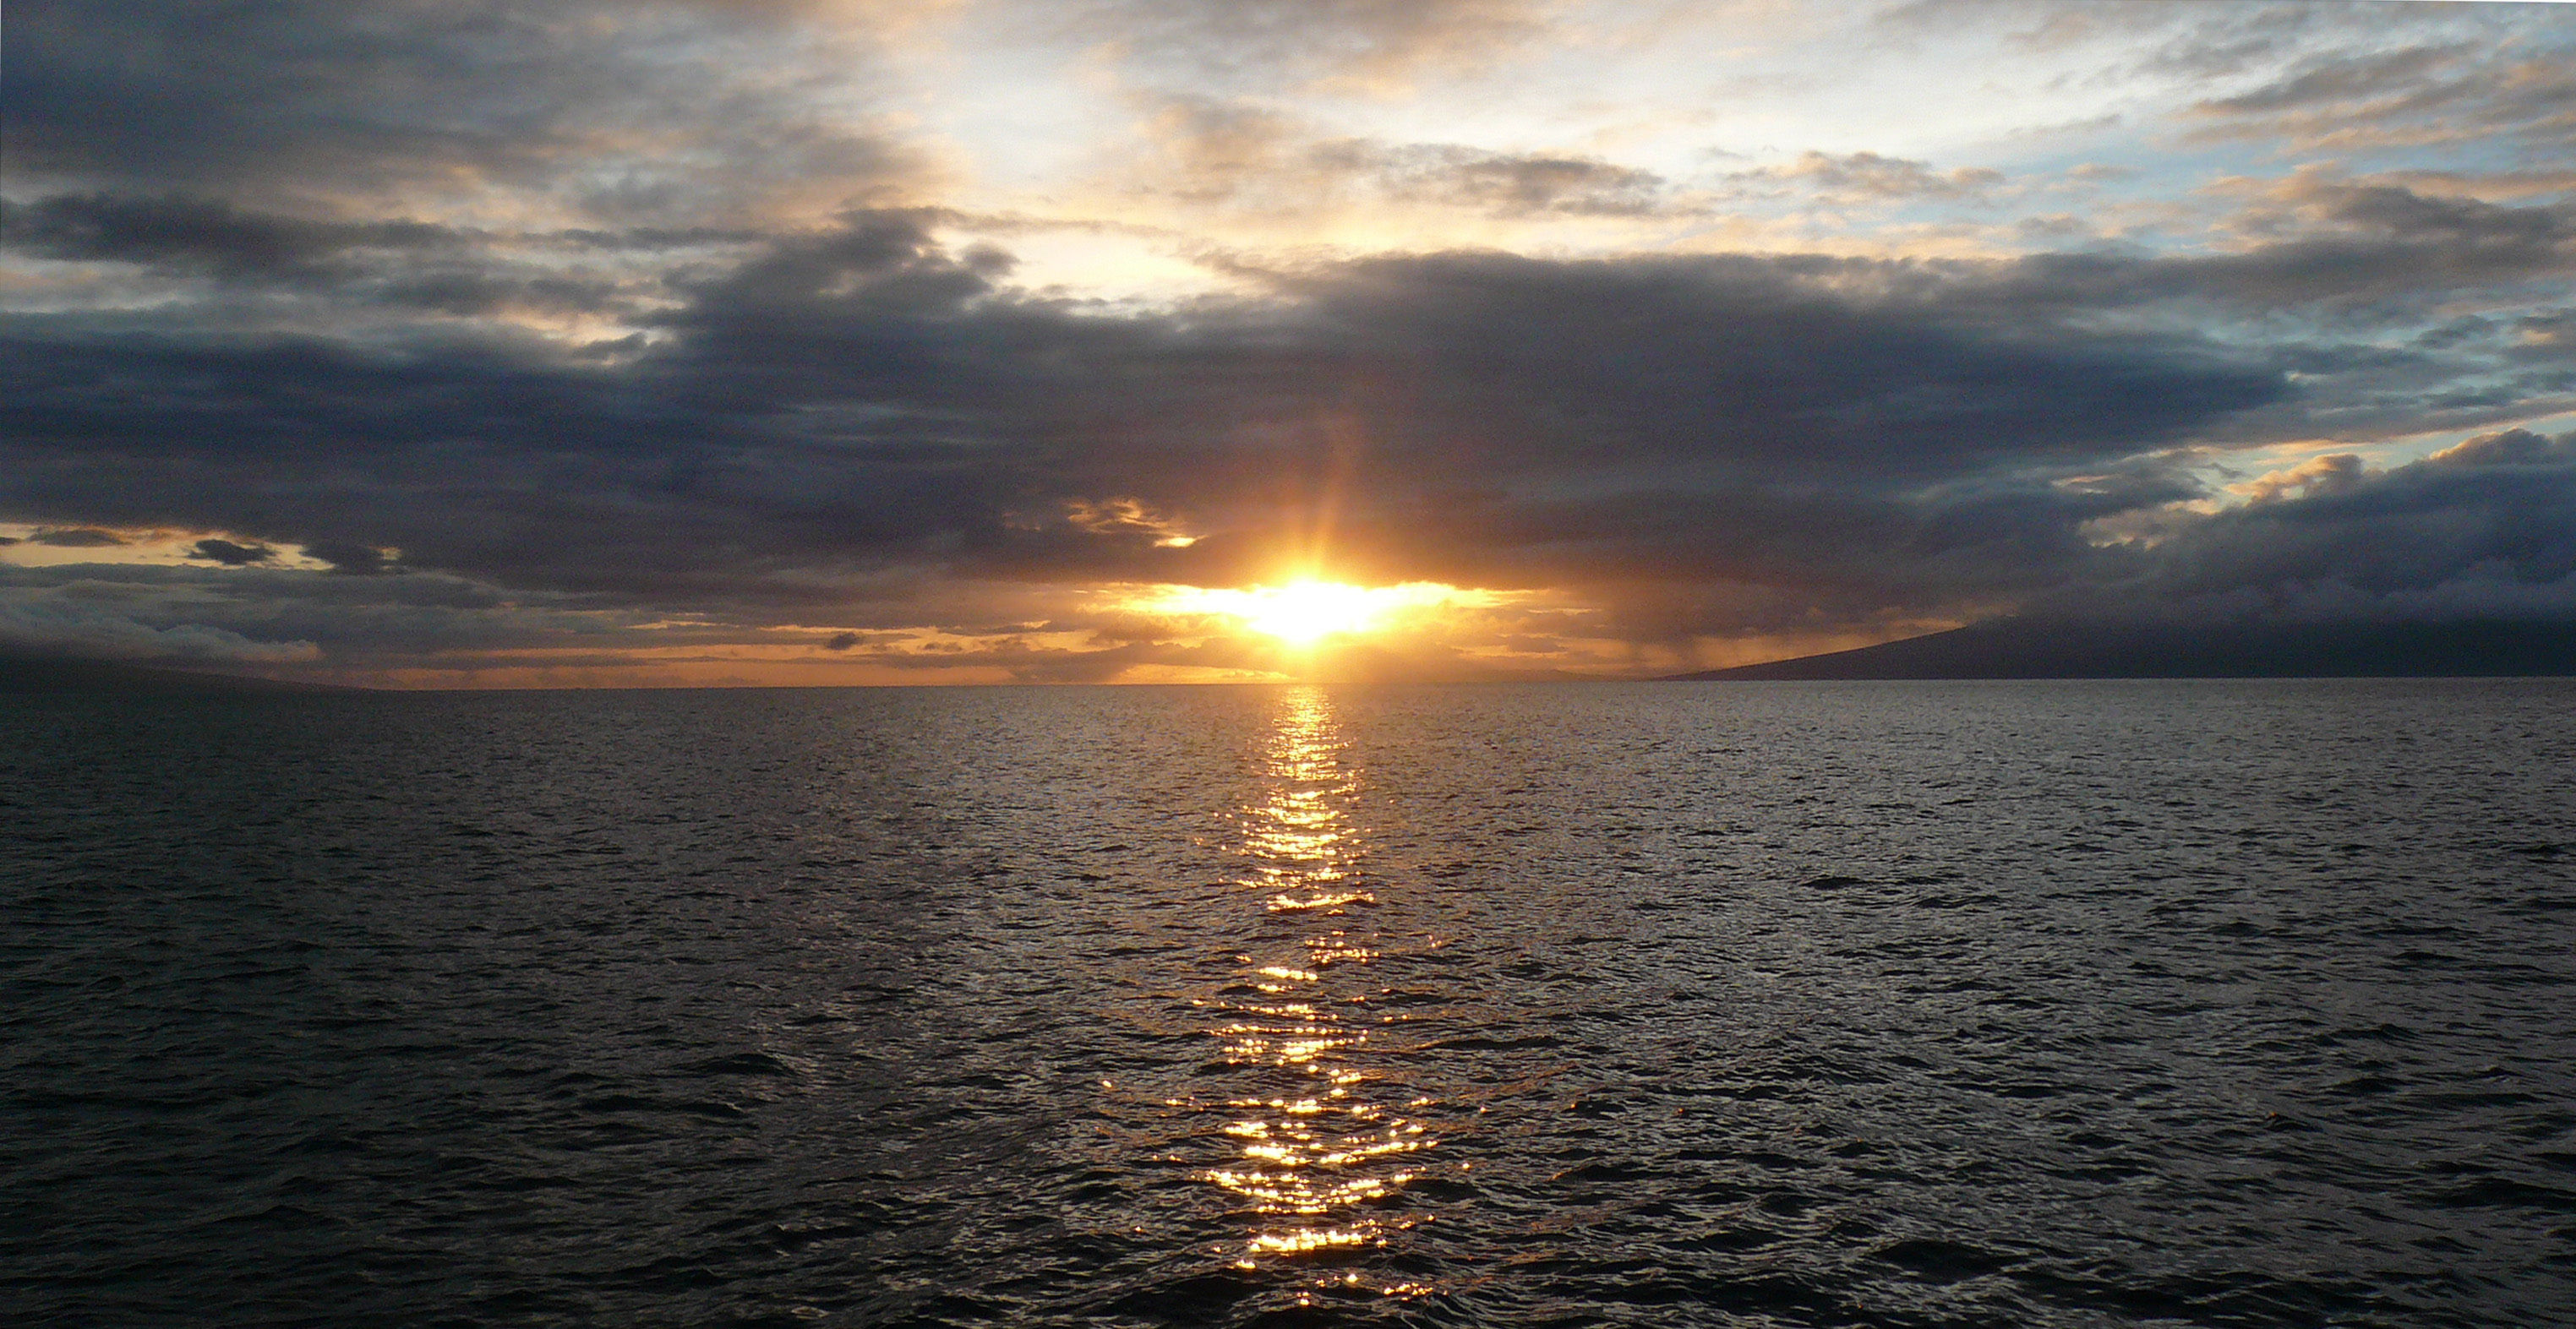 Sunset from Maui